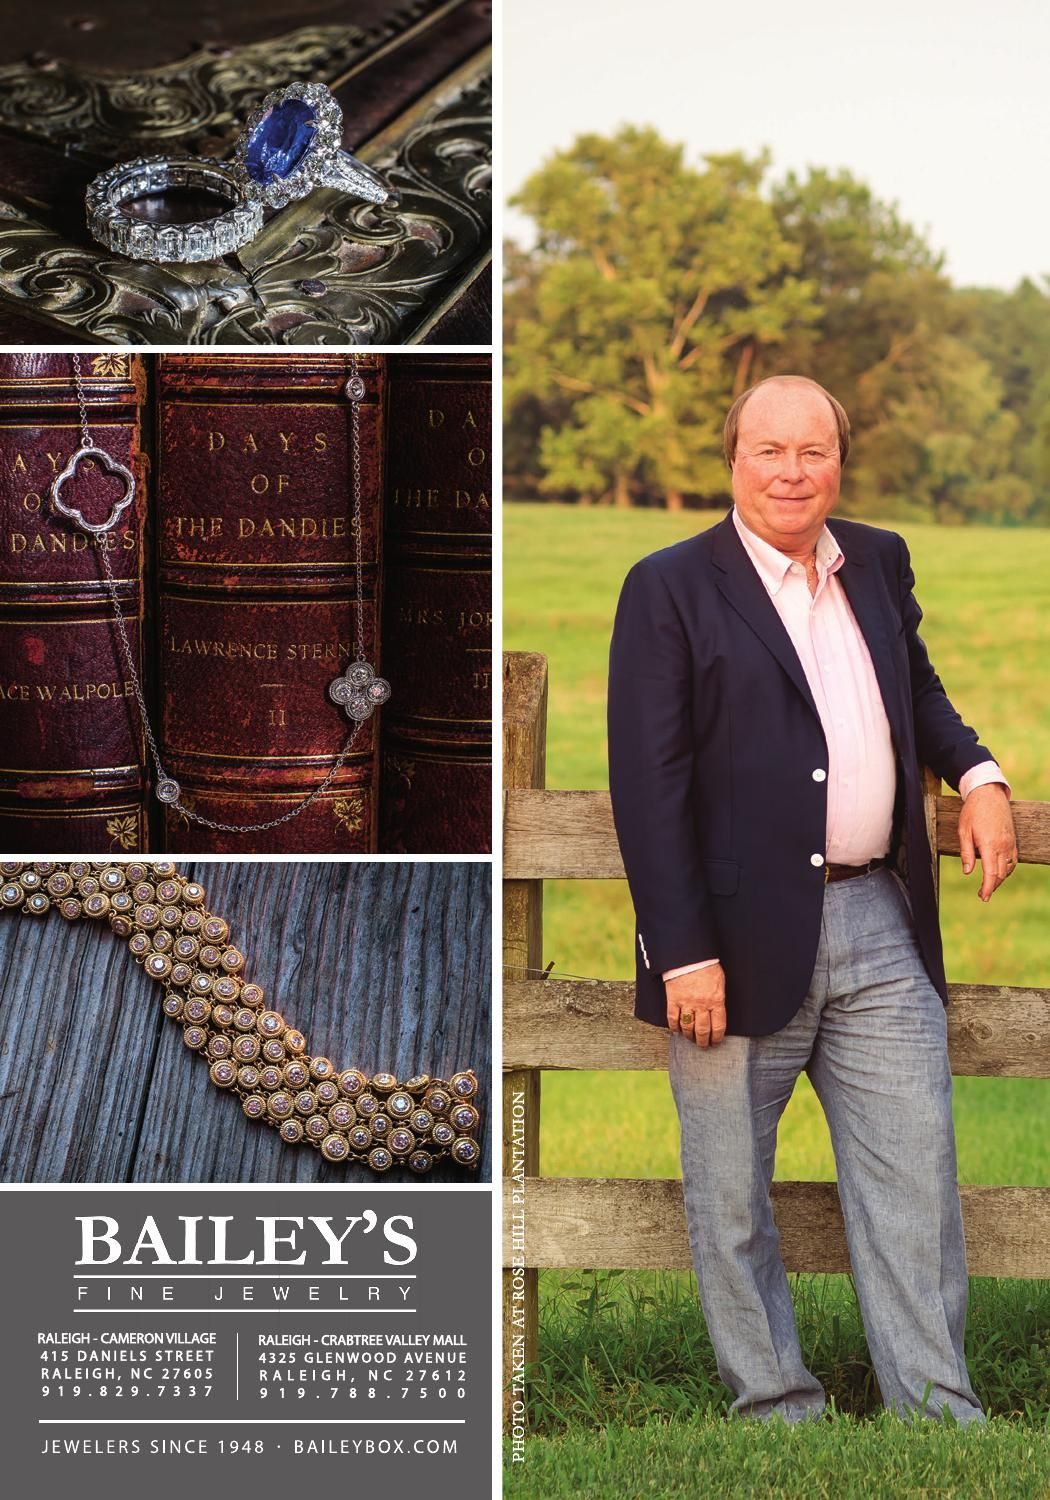 28++ Baileys jewelry crabtree valley mall viral